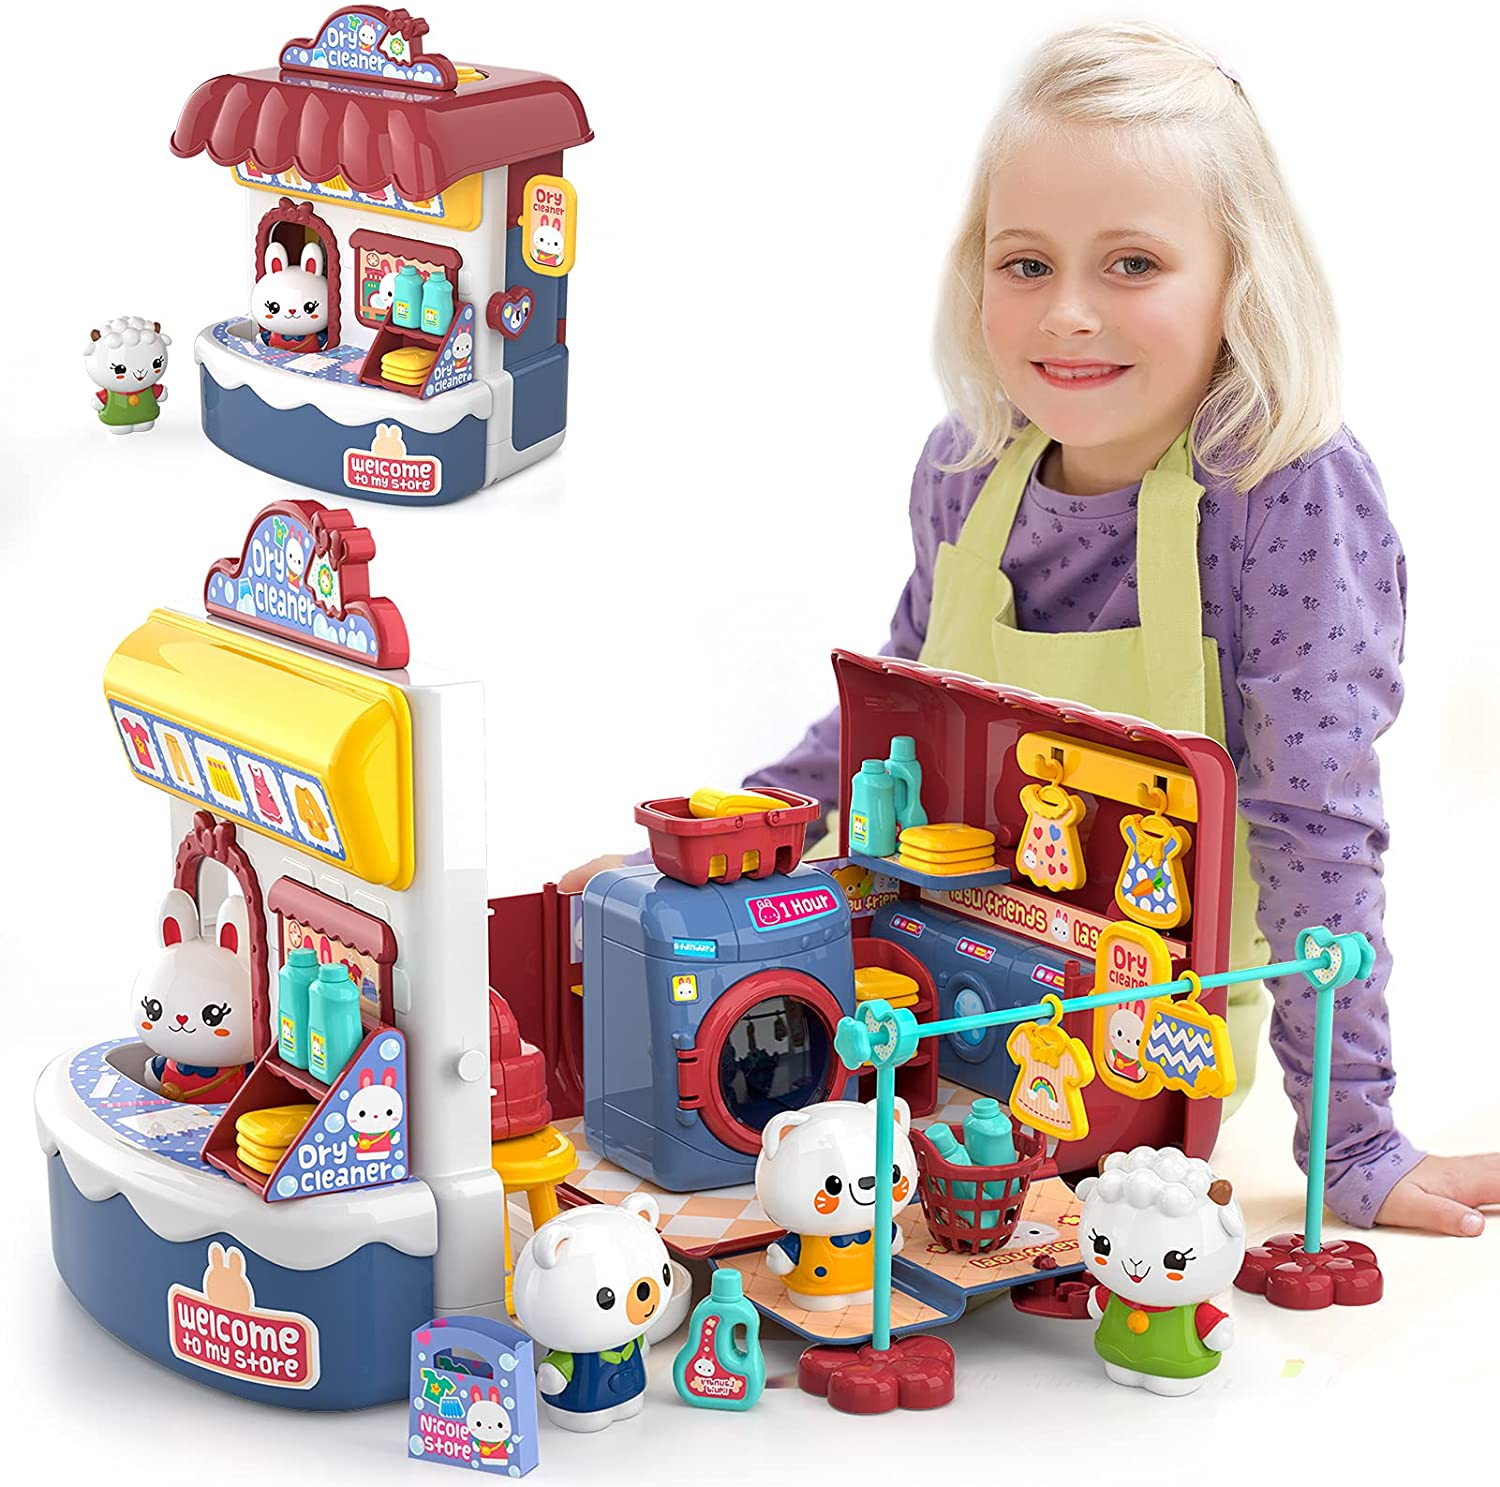 Free Shipping New Lucky Doug Pretend Play Doll Playset Super Special SALE held Toys Toddler Girls Kids for